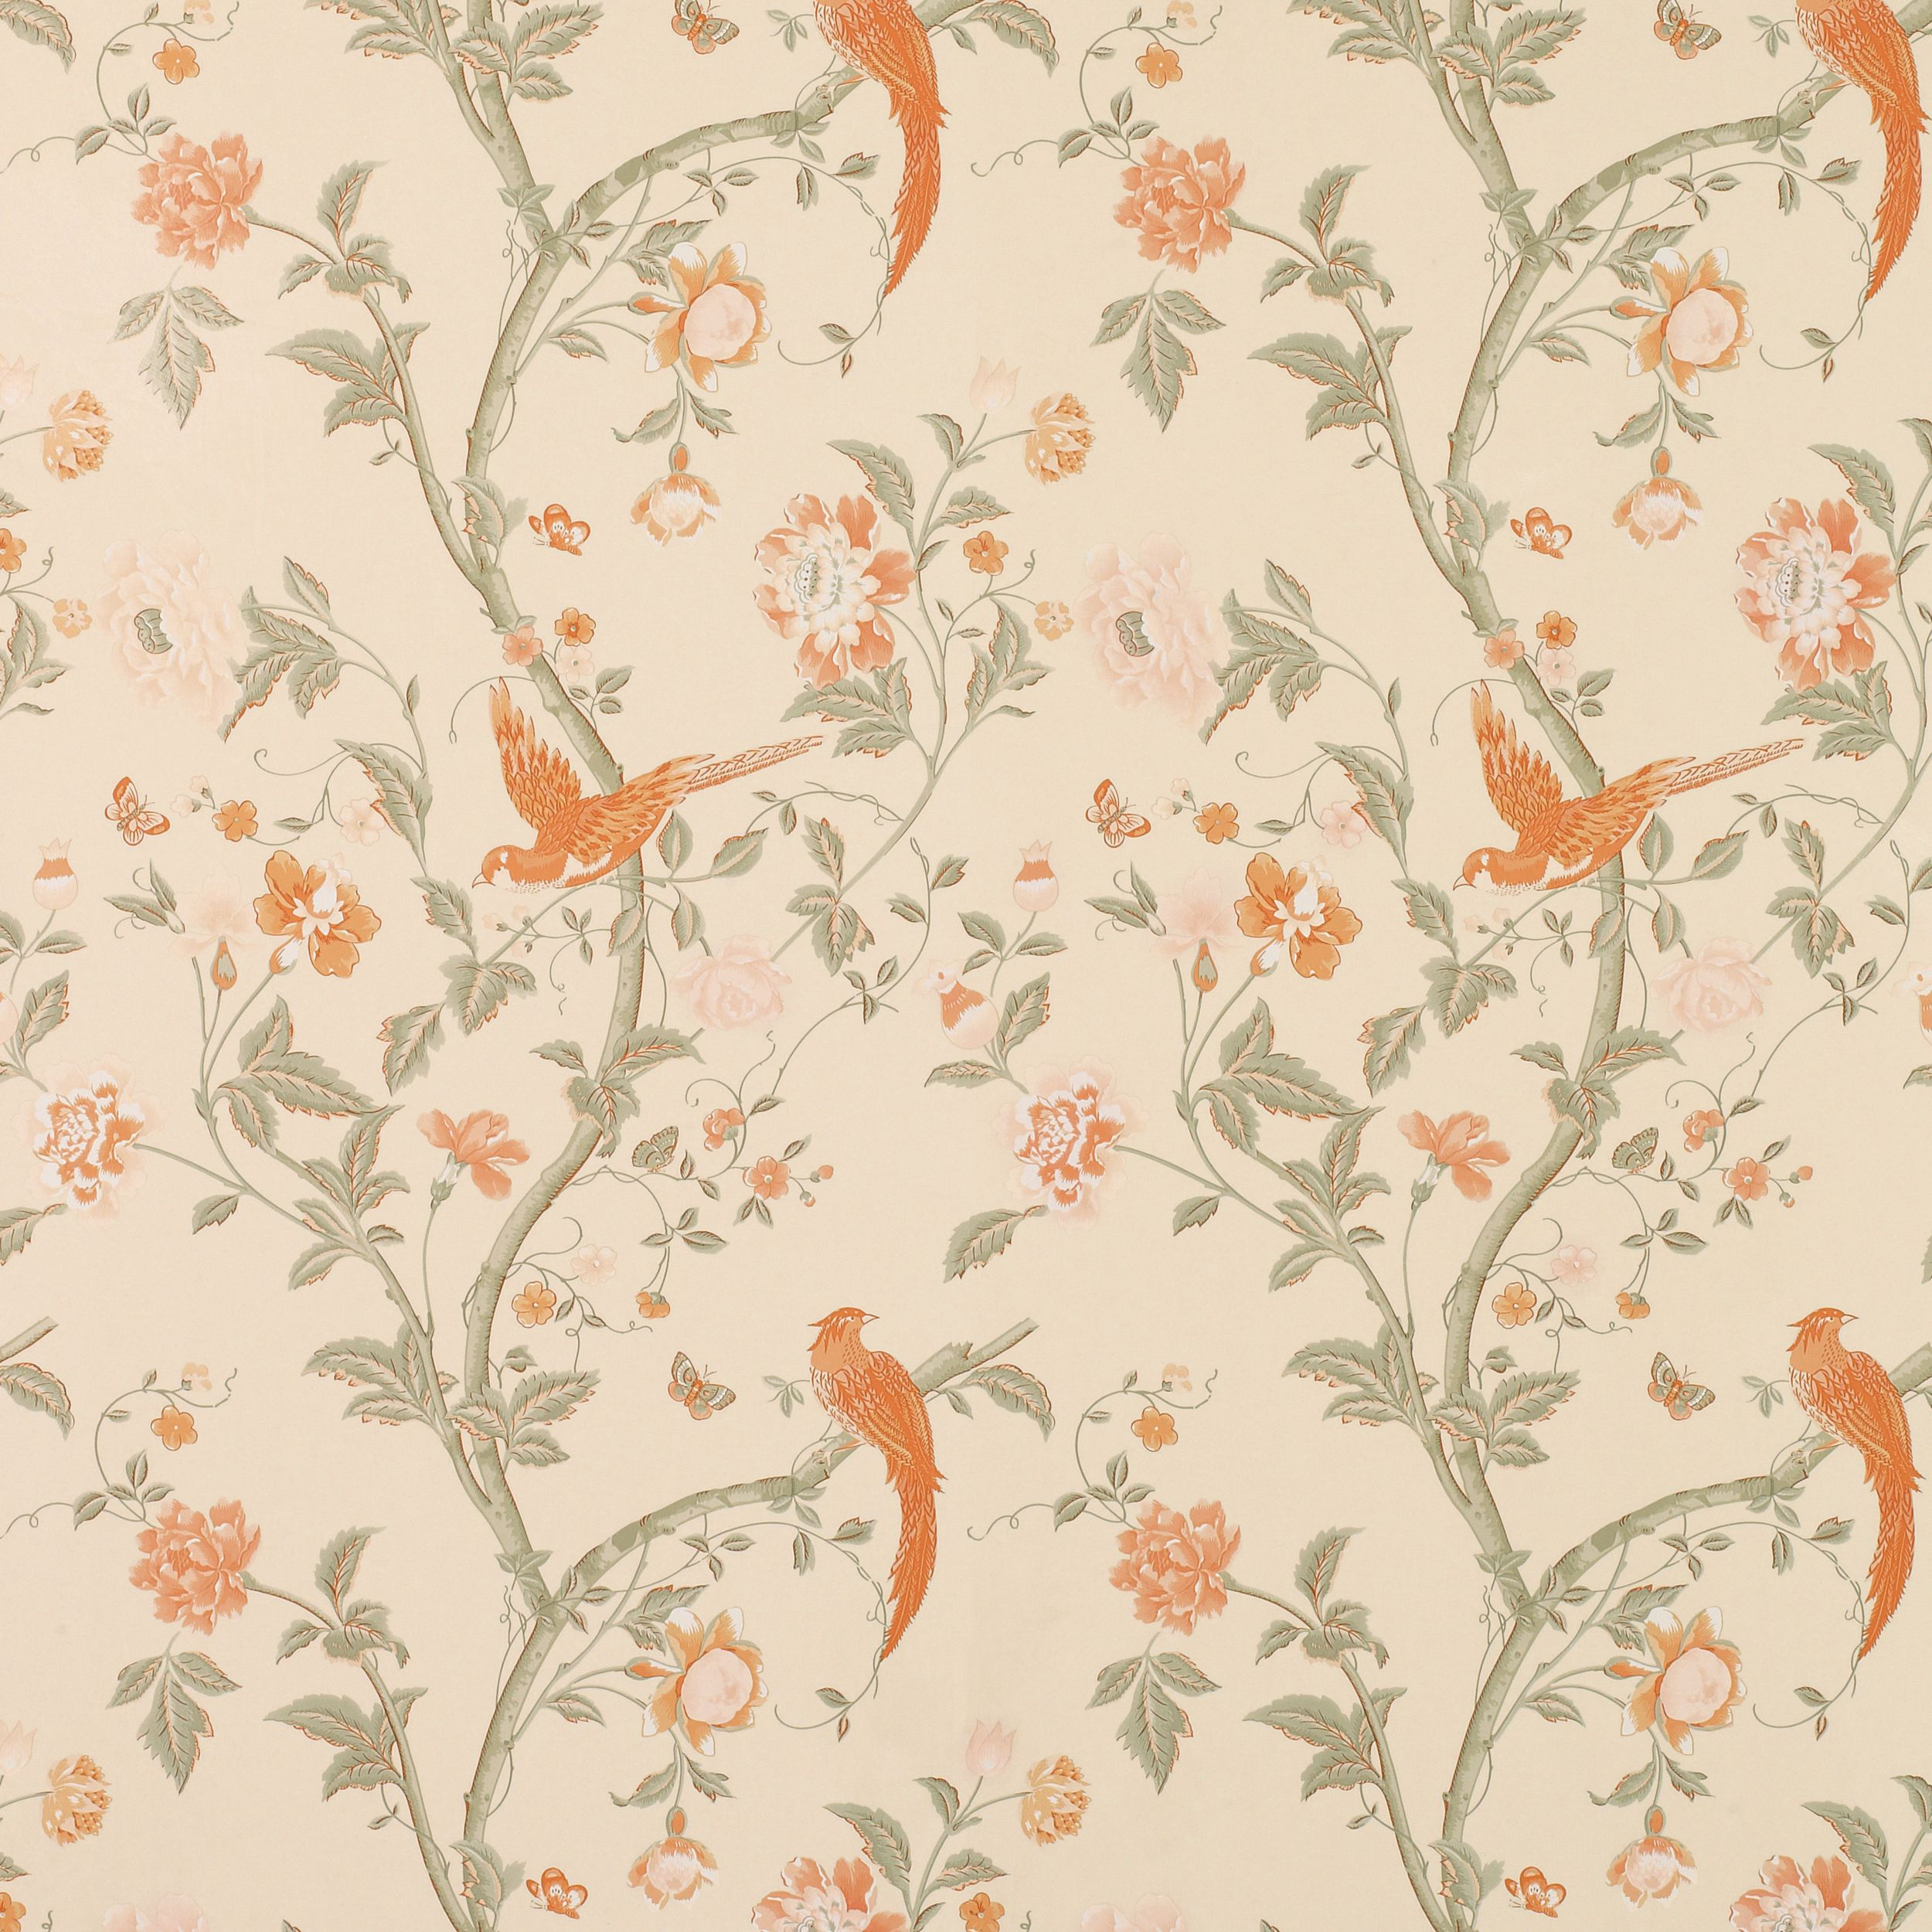 Laura Ashley Summer Palace Terracotta Wallpaper Floral